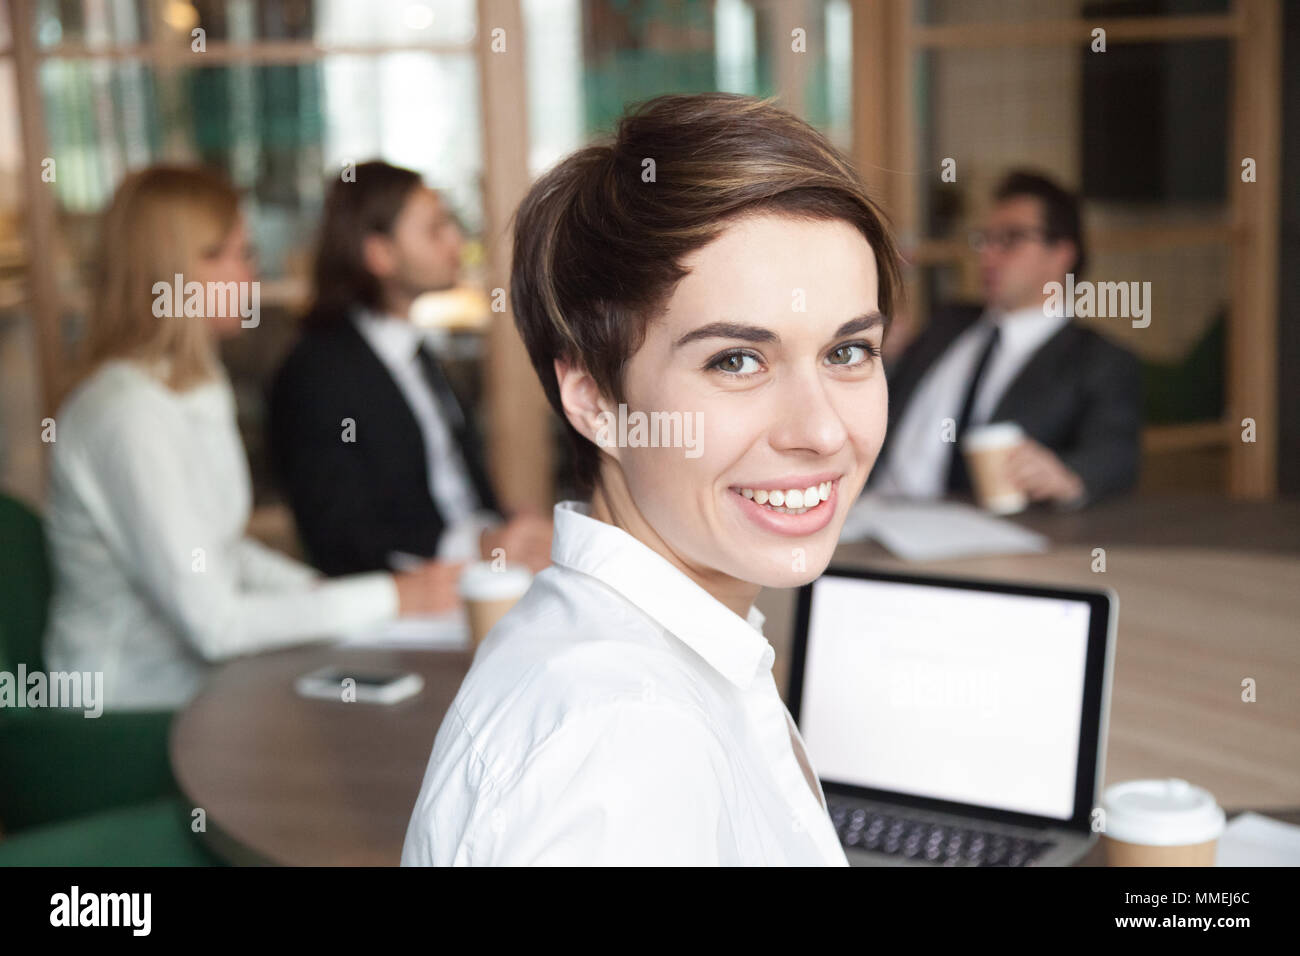 Interprète Professionnel Smiling businesswoman looking at camera Photo Stock